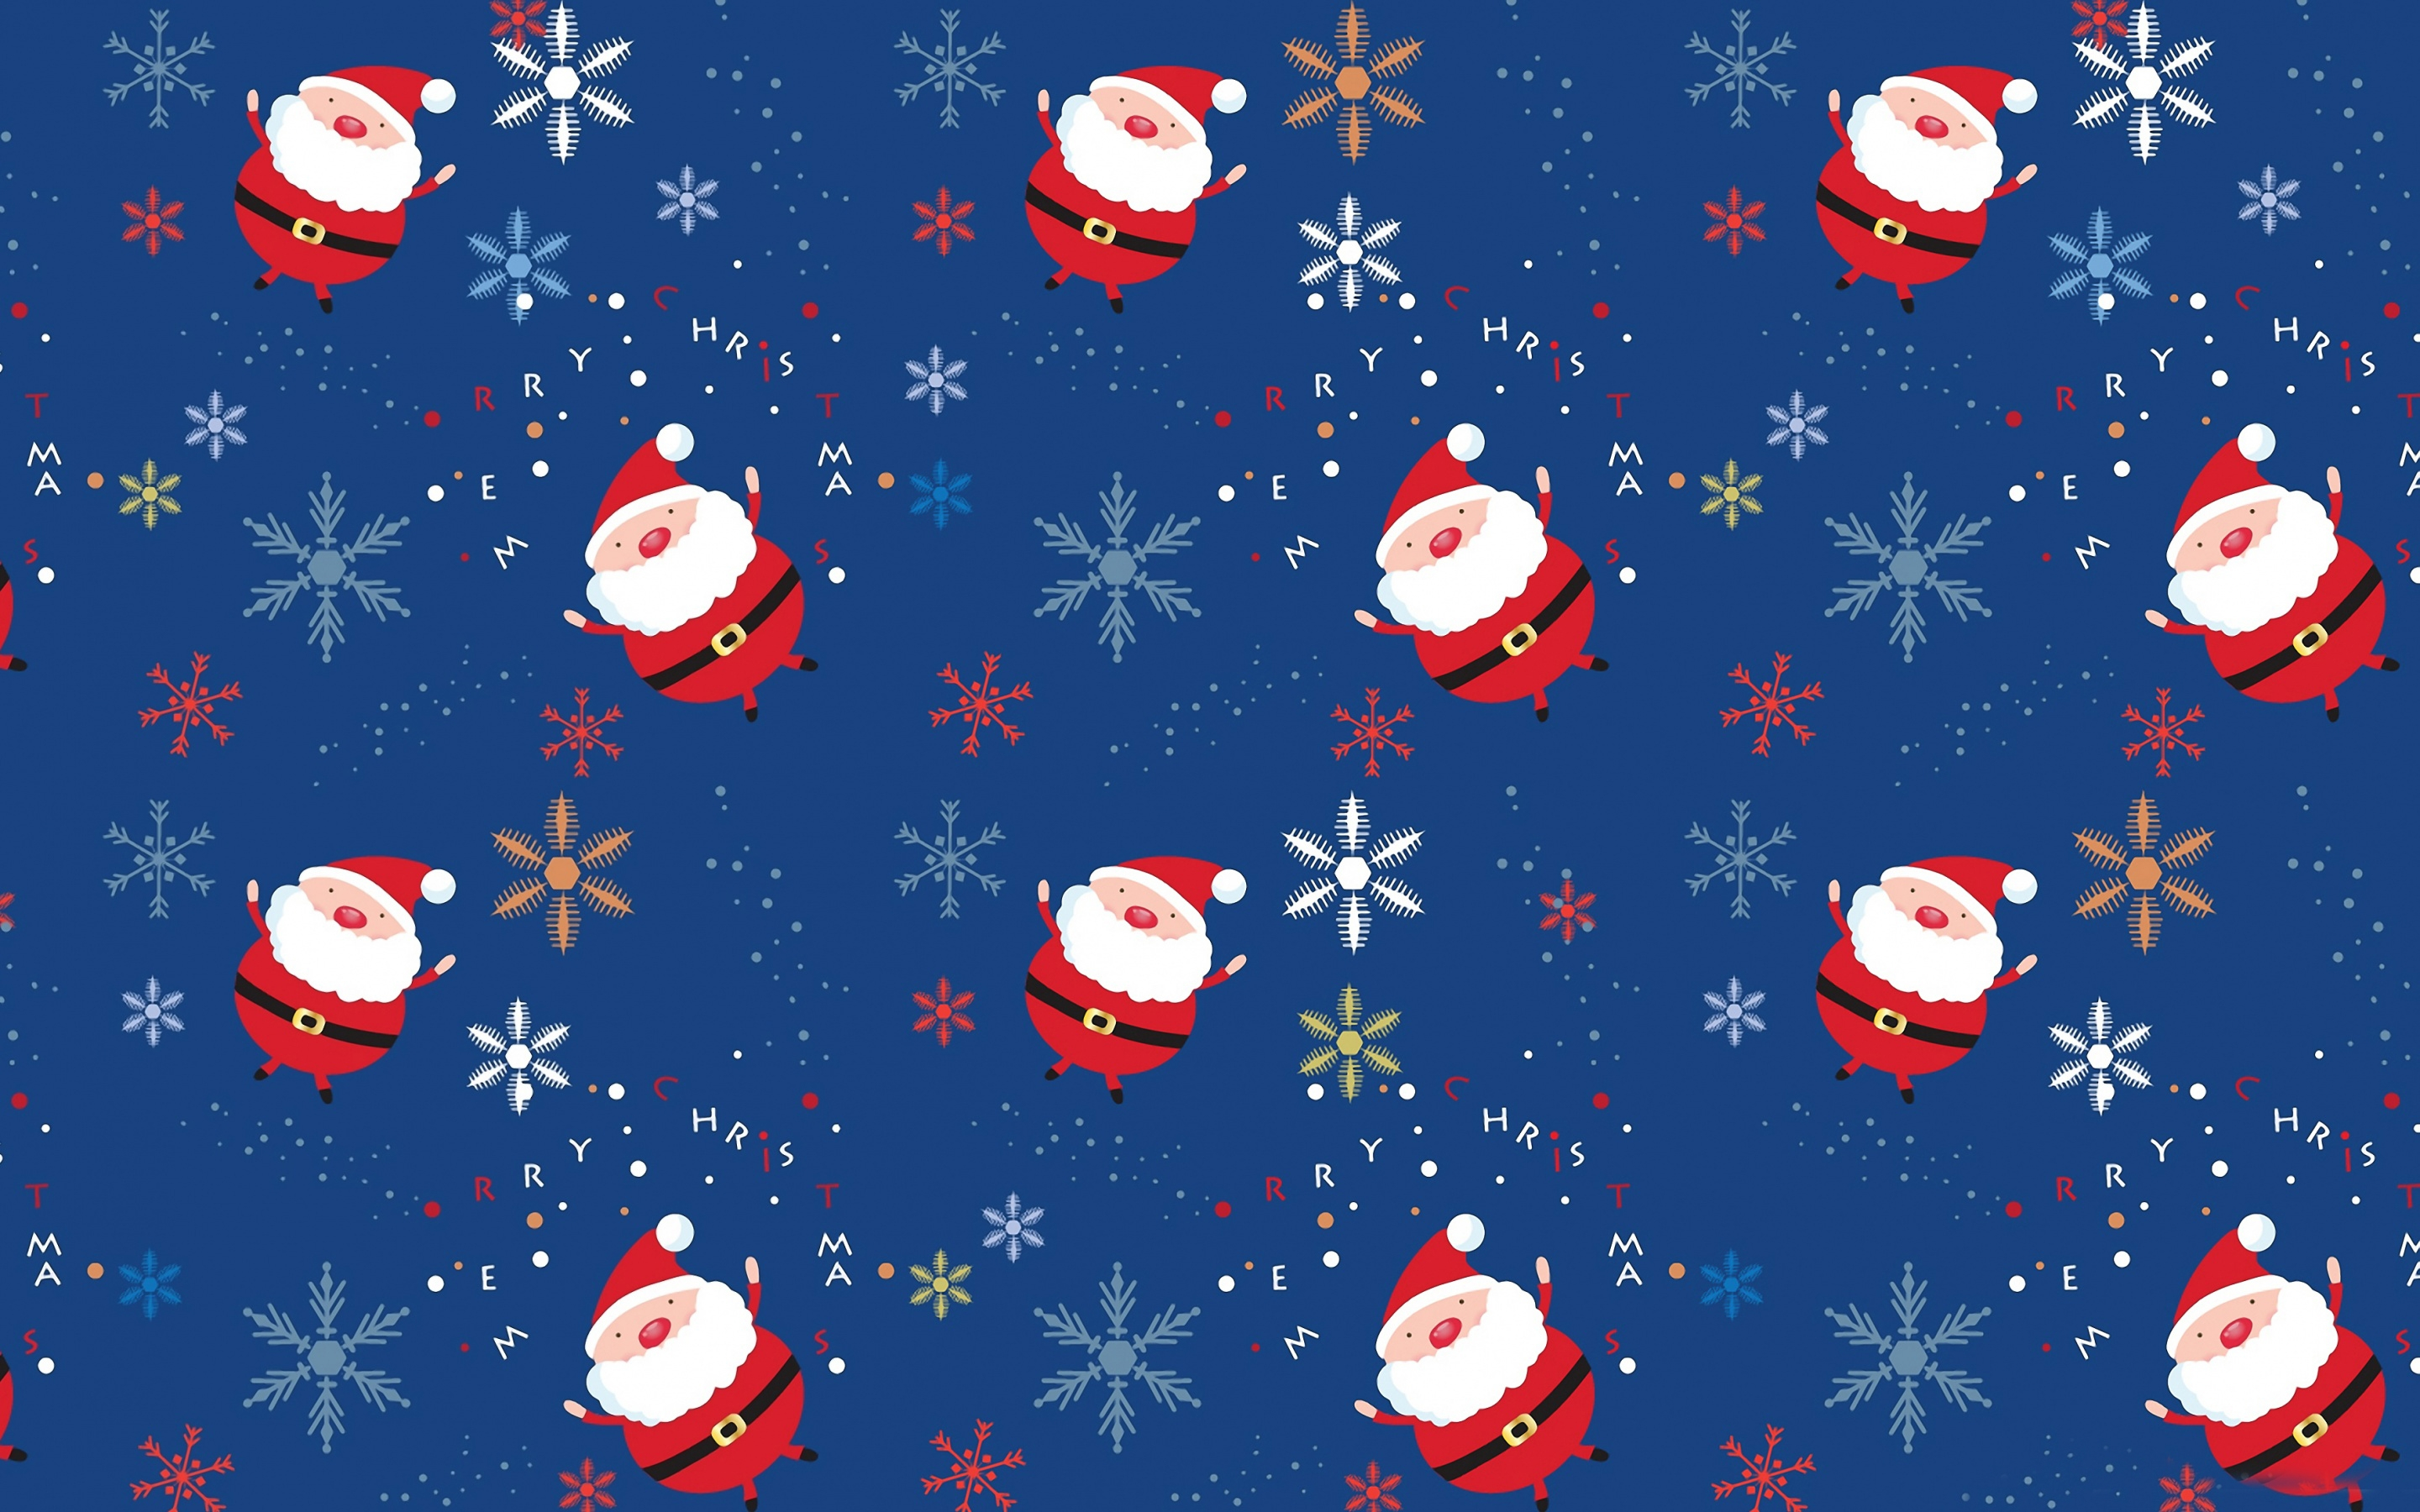 Hd Cute Christmas Background Amazing Images Smart Phone - Cute Christmas Desktop Background - HD Wallpaper